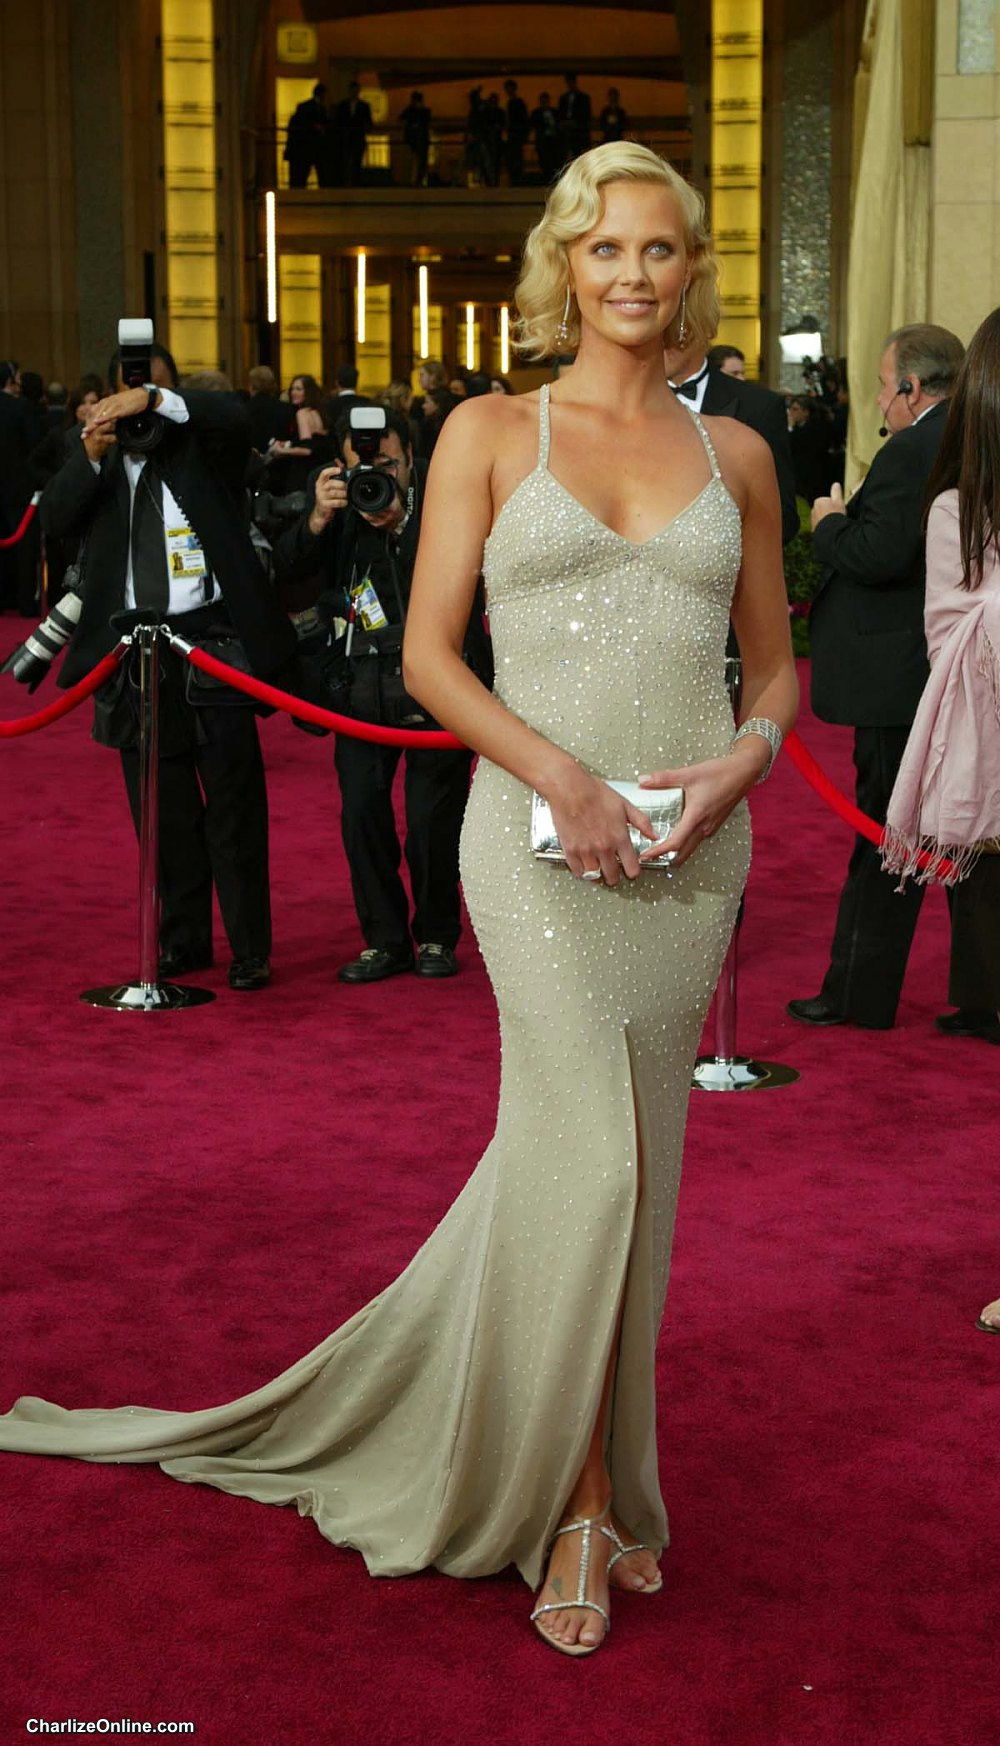 Gallery For > Charlize Theron Weight Charlize Theron Weight